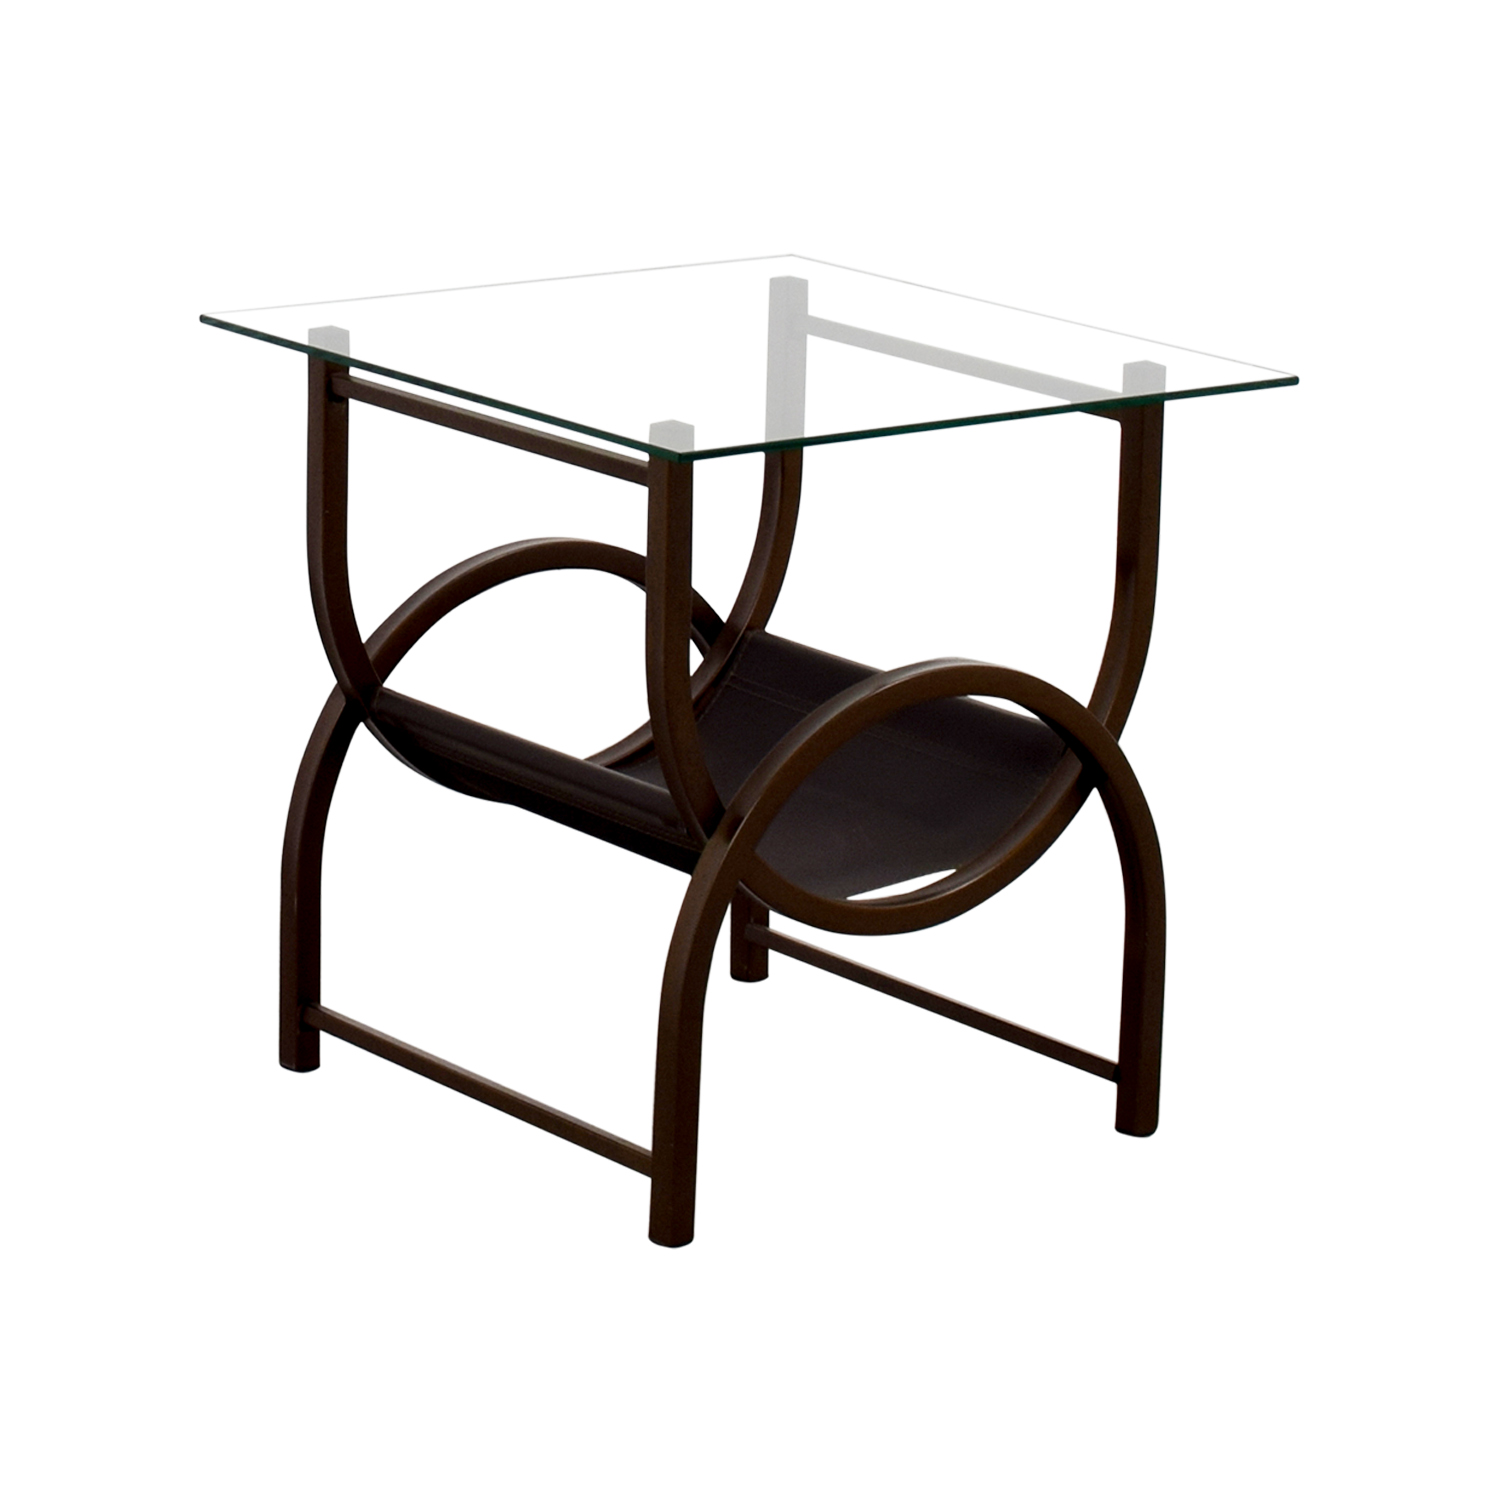 90 off glass and wrought iron side table tables for Wrought iron and glass side tables